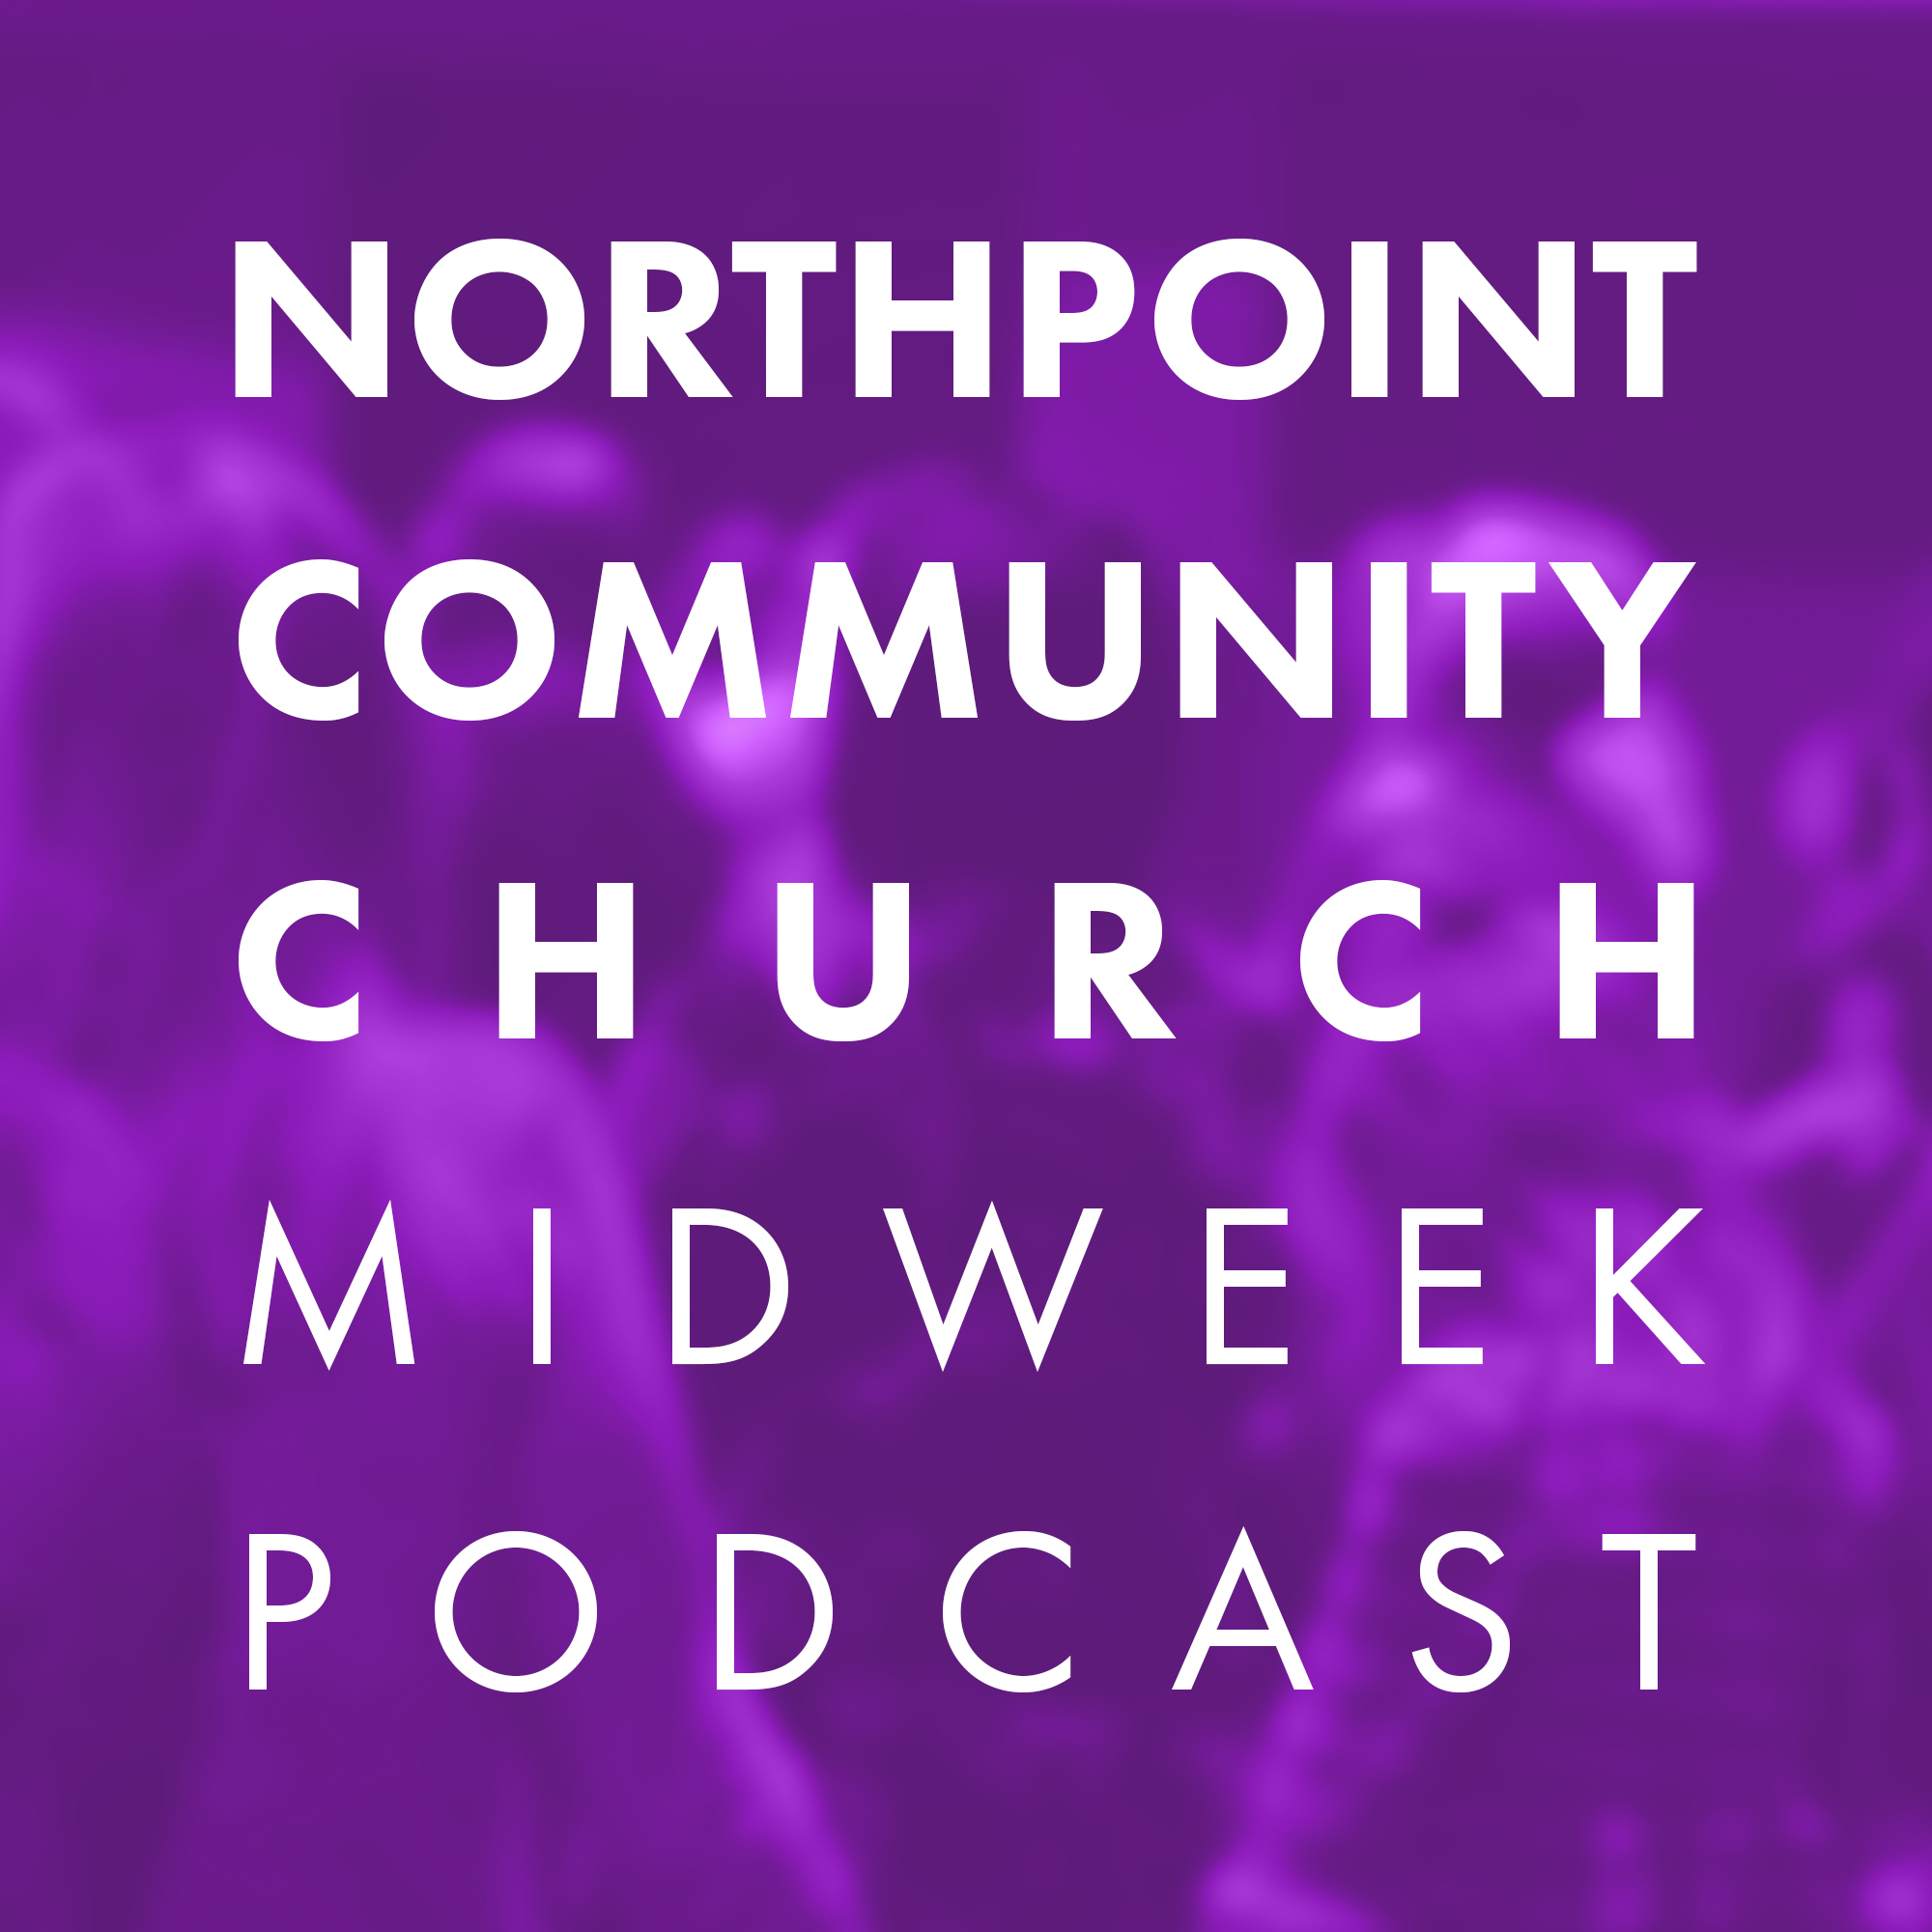 NorthPoint Community Church - Midweek